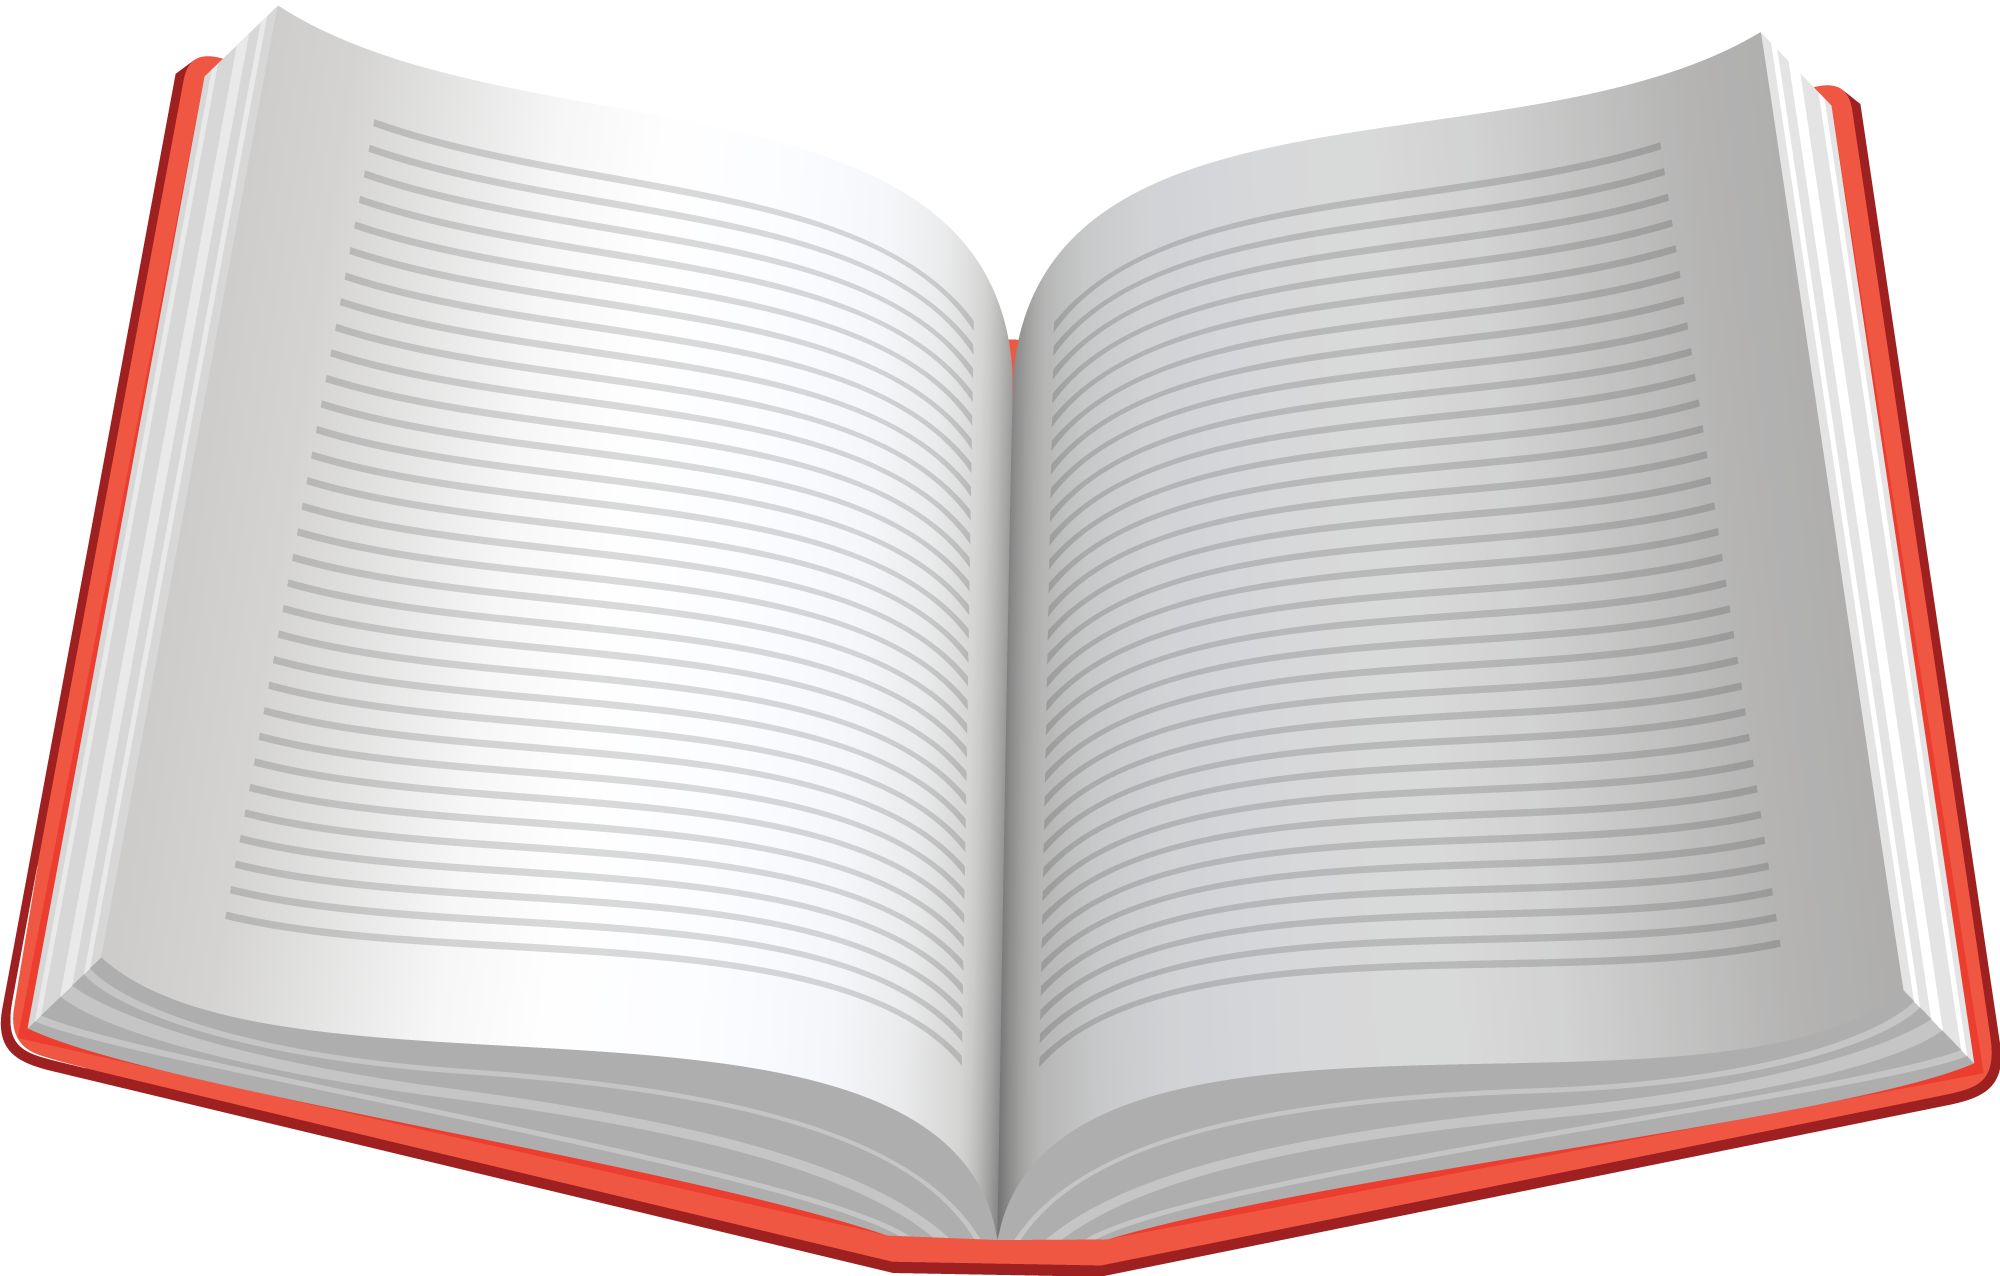 Book clipart open text Cliparts Cliparts Zone Book Word